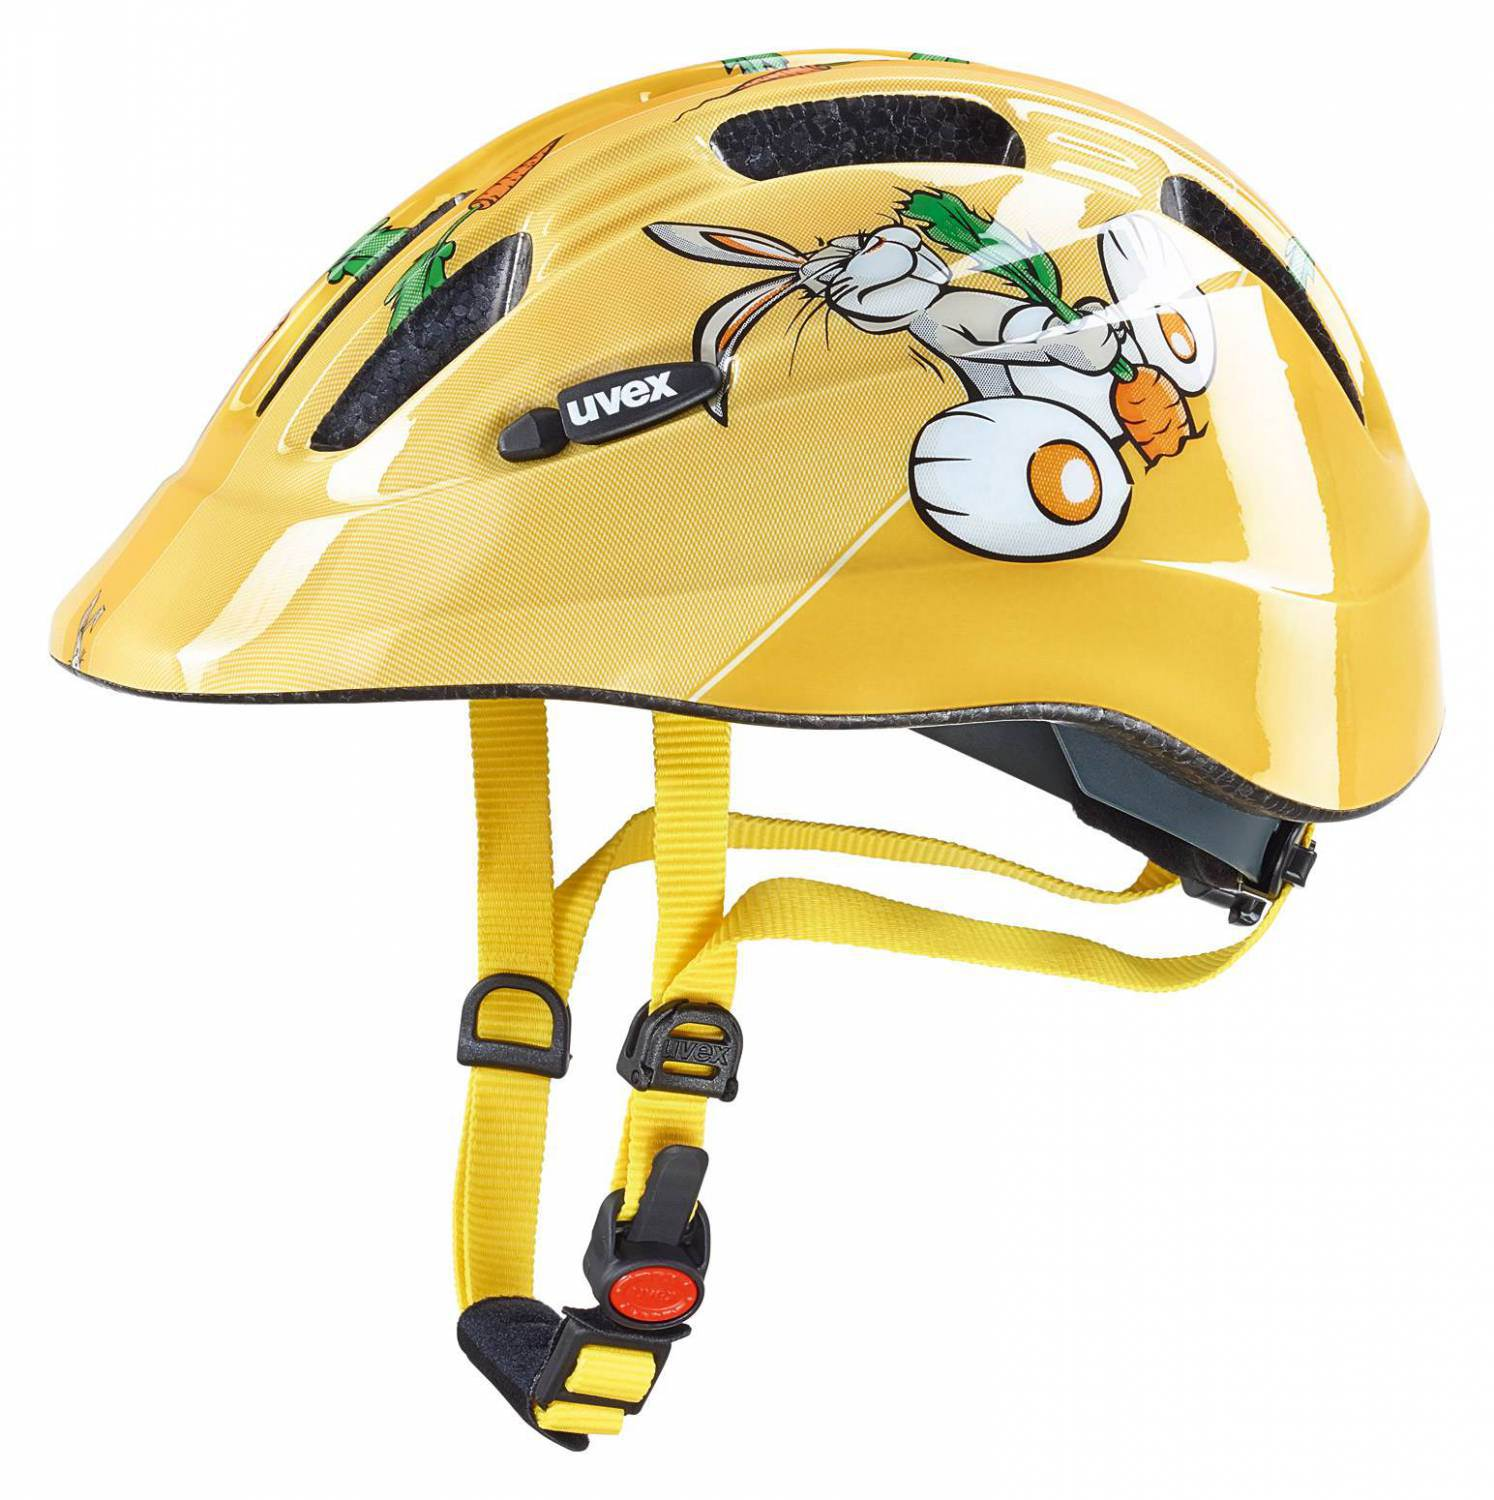 uvex-cartoon-kinder-fahrradhelm-gr-ouml-szlig-e-49-55-cm-08-rabbit-